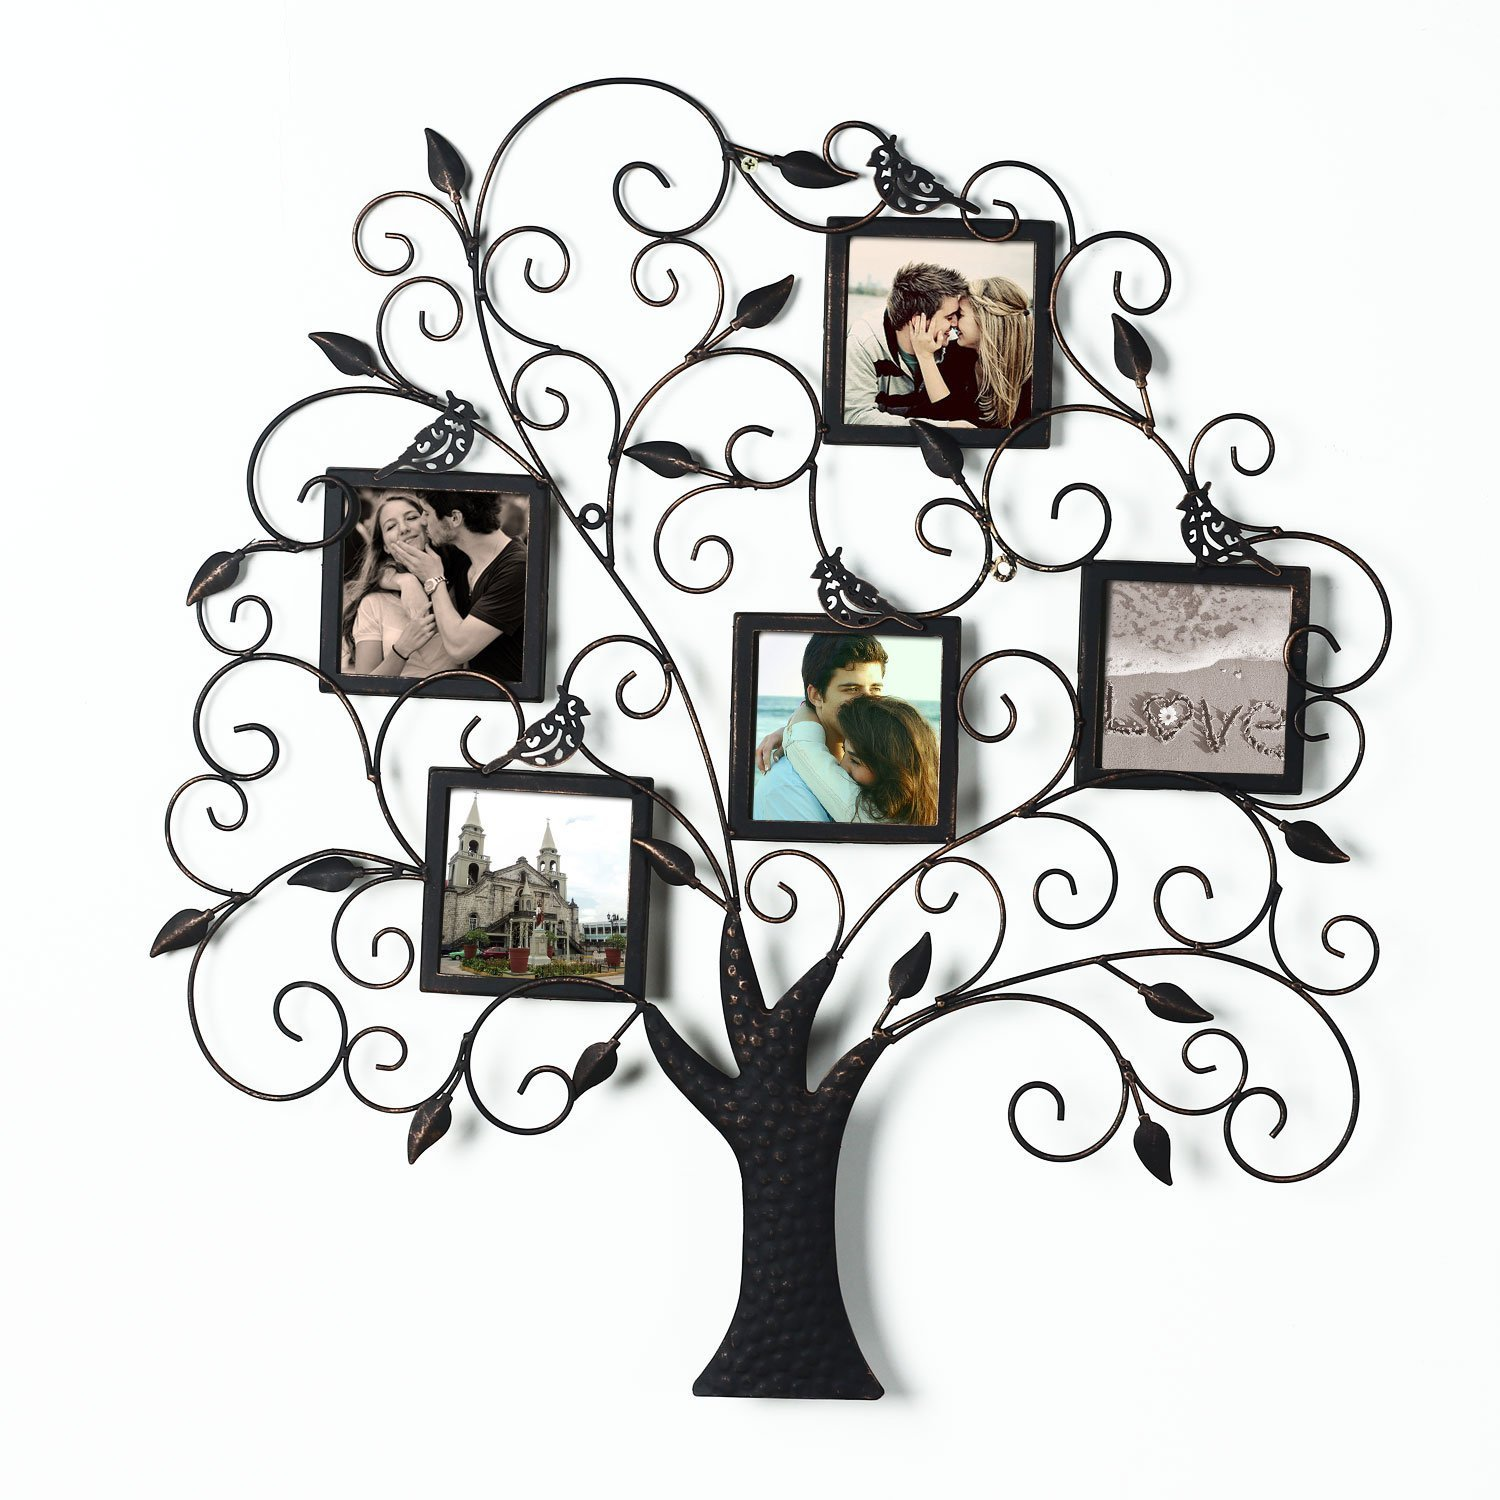 "Adeco PF0588 Brown Black Decorative Tree Style Collage Iron Metal Wall Family Tree Scroll Hanging Picture Photo Frame, 5 Opening , 4x4"" Each, Black with Antique Finish"